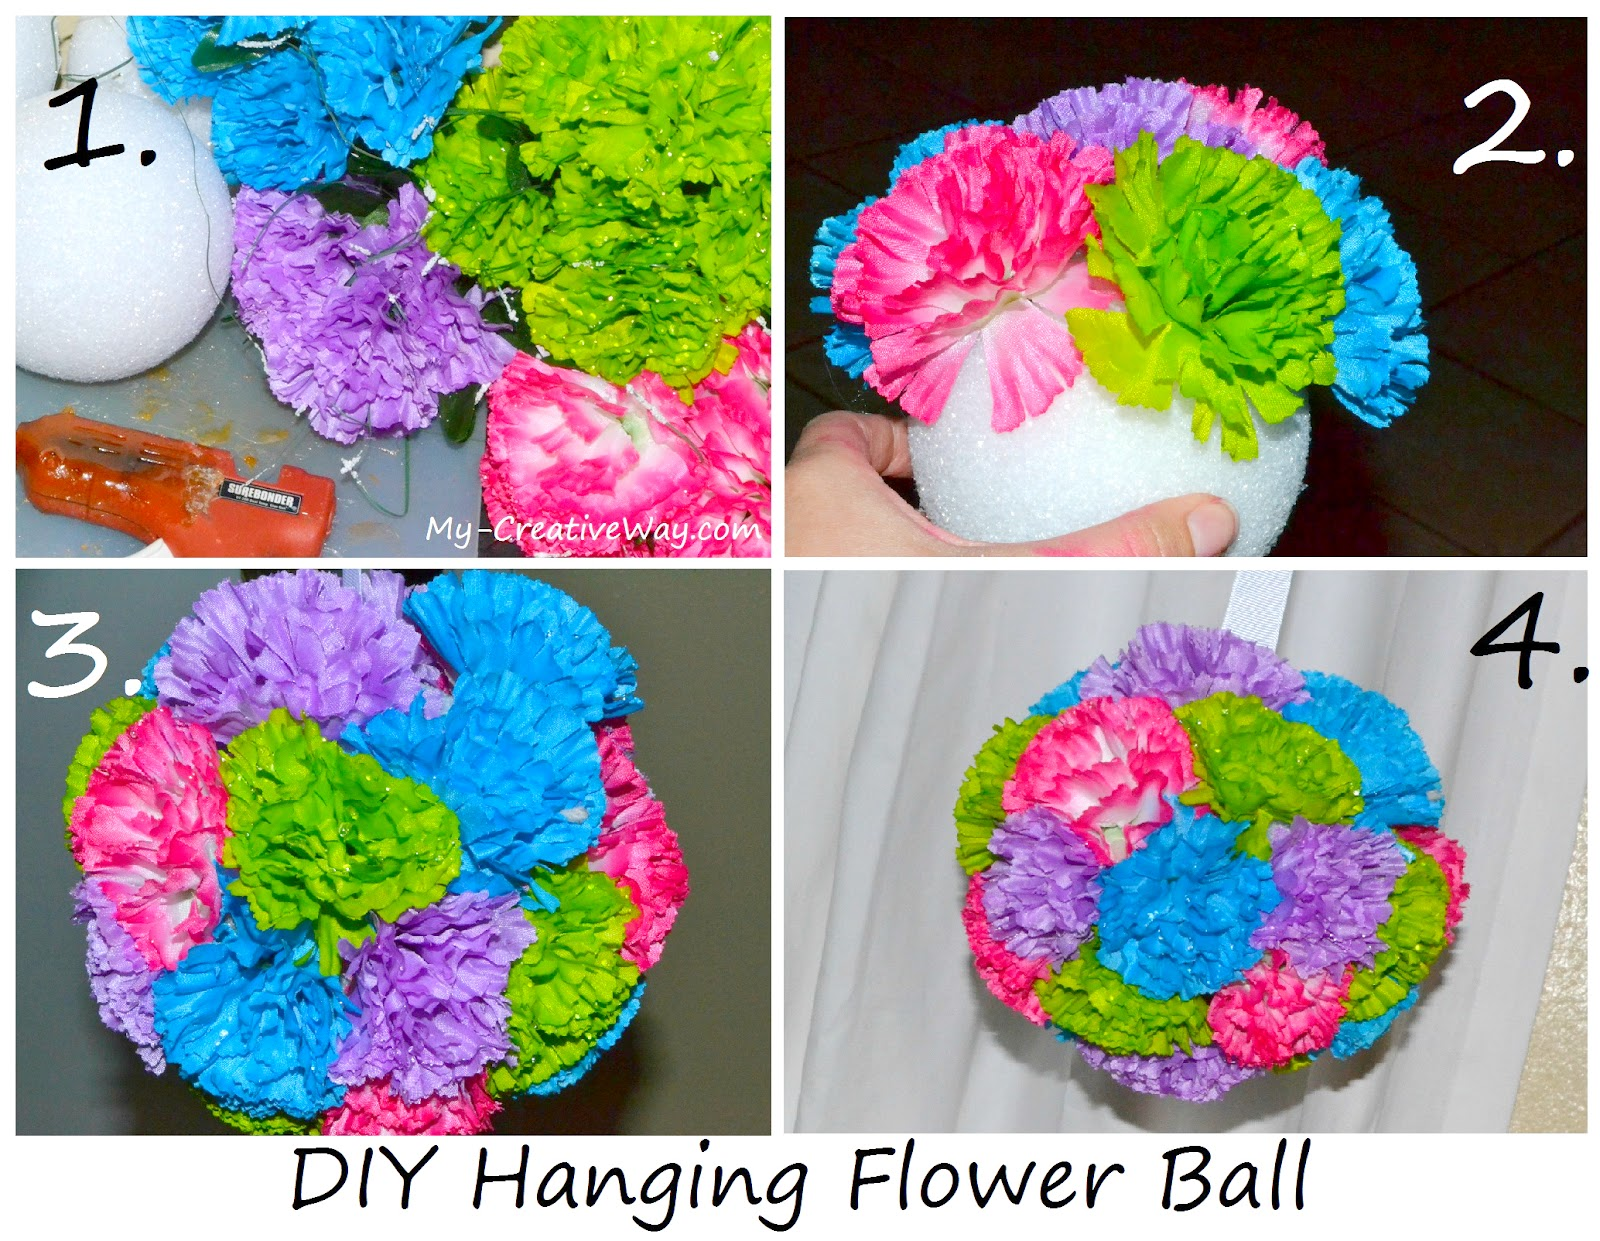 My Creative Way How to make a hanging Flower Ball DIY Crafts Tutorial